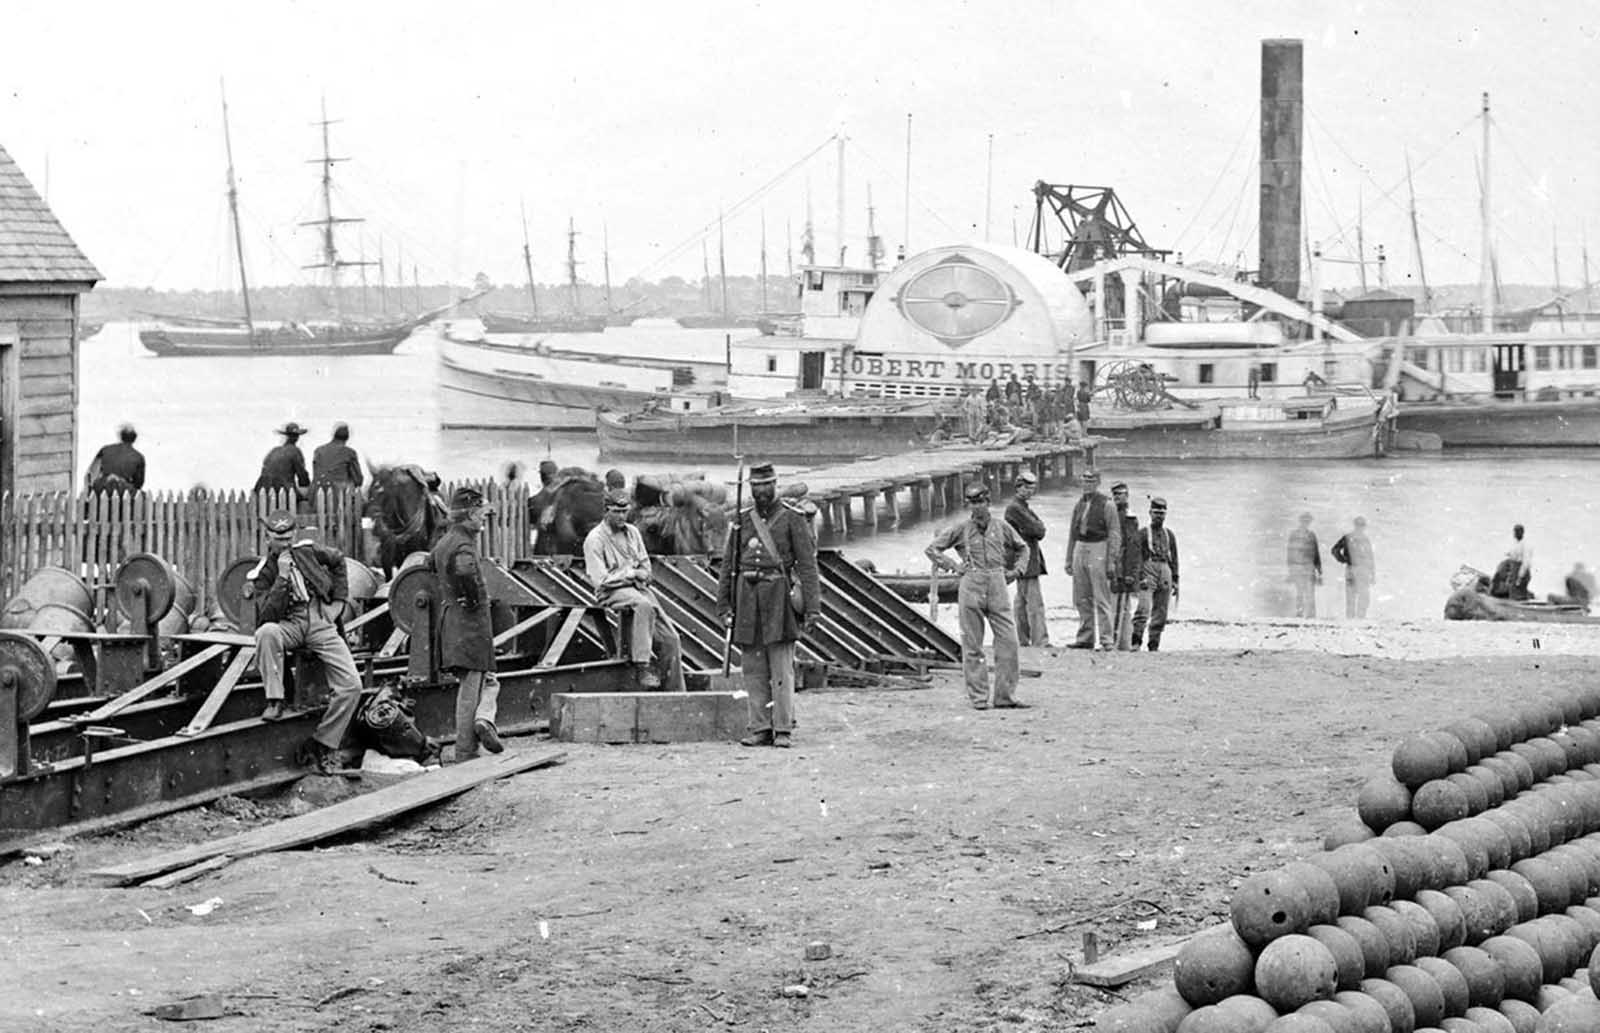 Yorktown, Virginia, Embarkation for White House Landing, Virginia, Photograph from the main eastern theater of war, the Peninsular Campaign, May-August 1862.